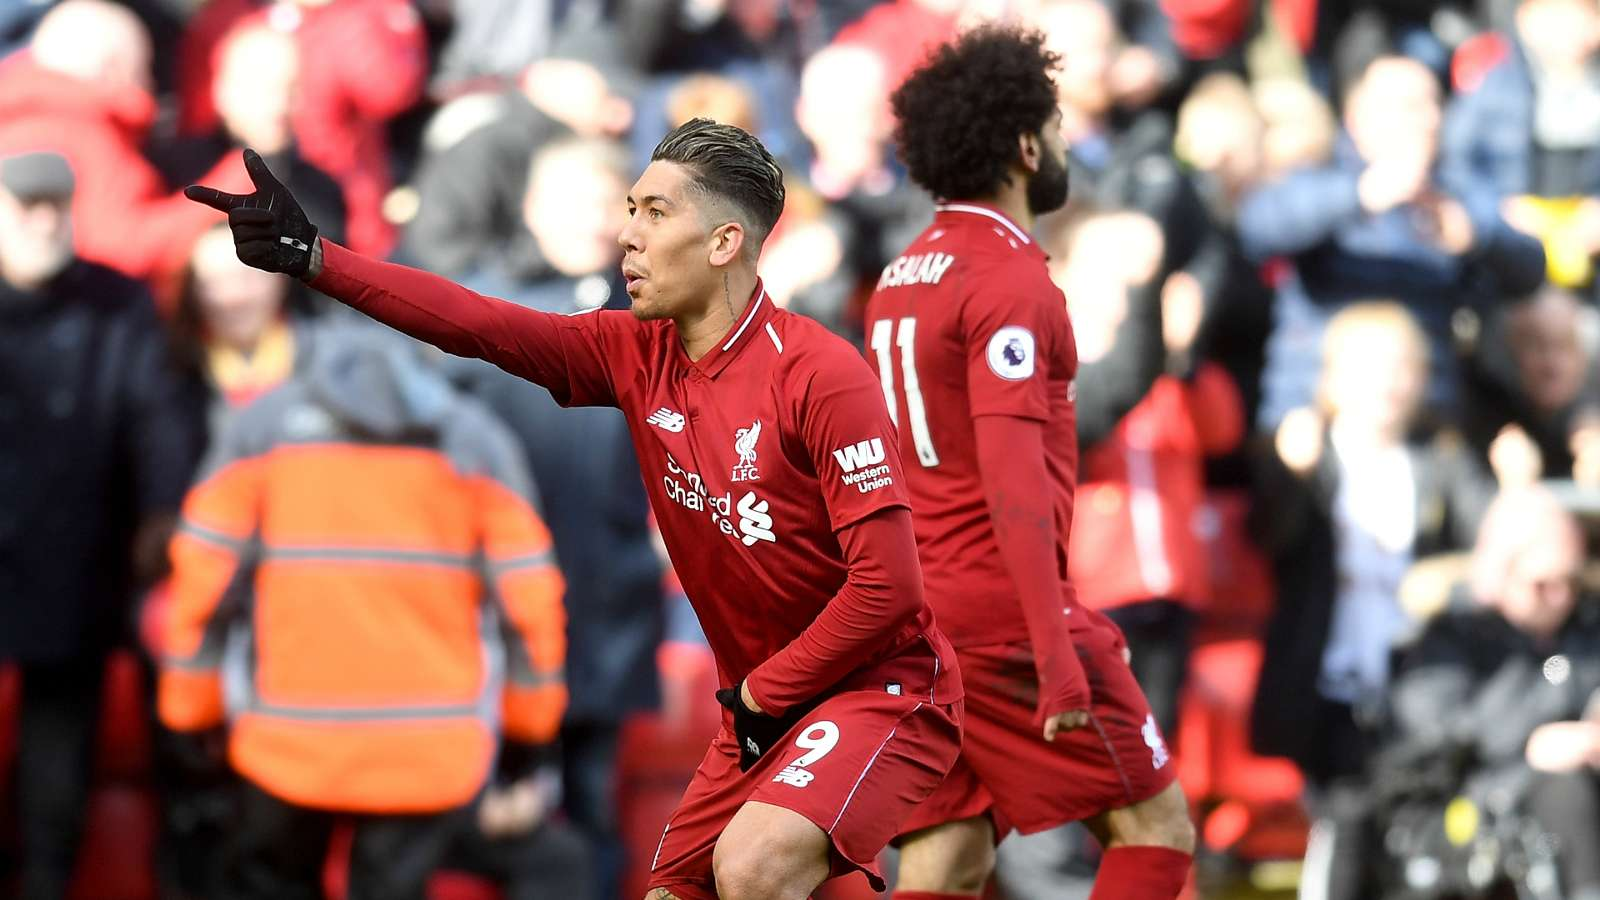 roberto firmino cropped 3e85xewgykfq13xu3evsw4272 - Liverpool vs Burnley 4-2: Premier League Match Report & Highlights